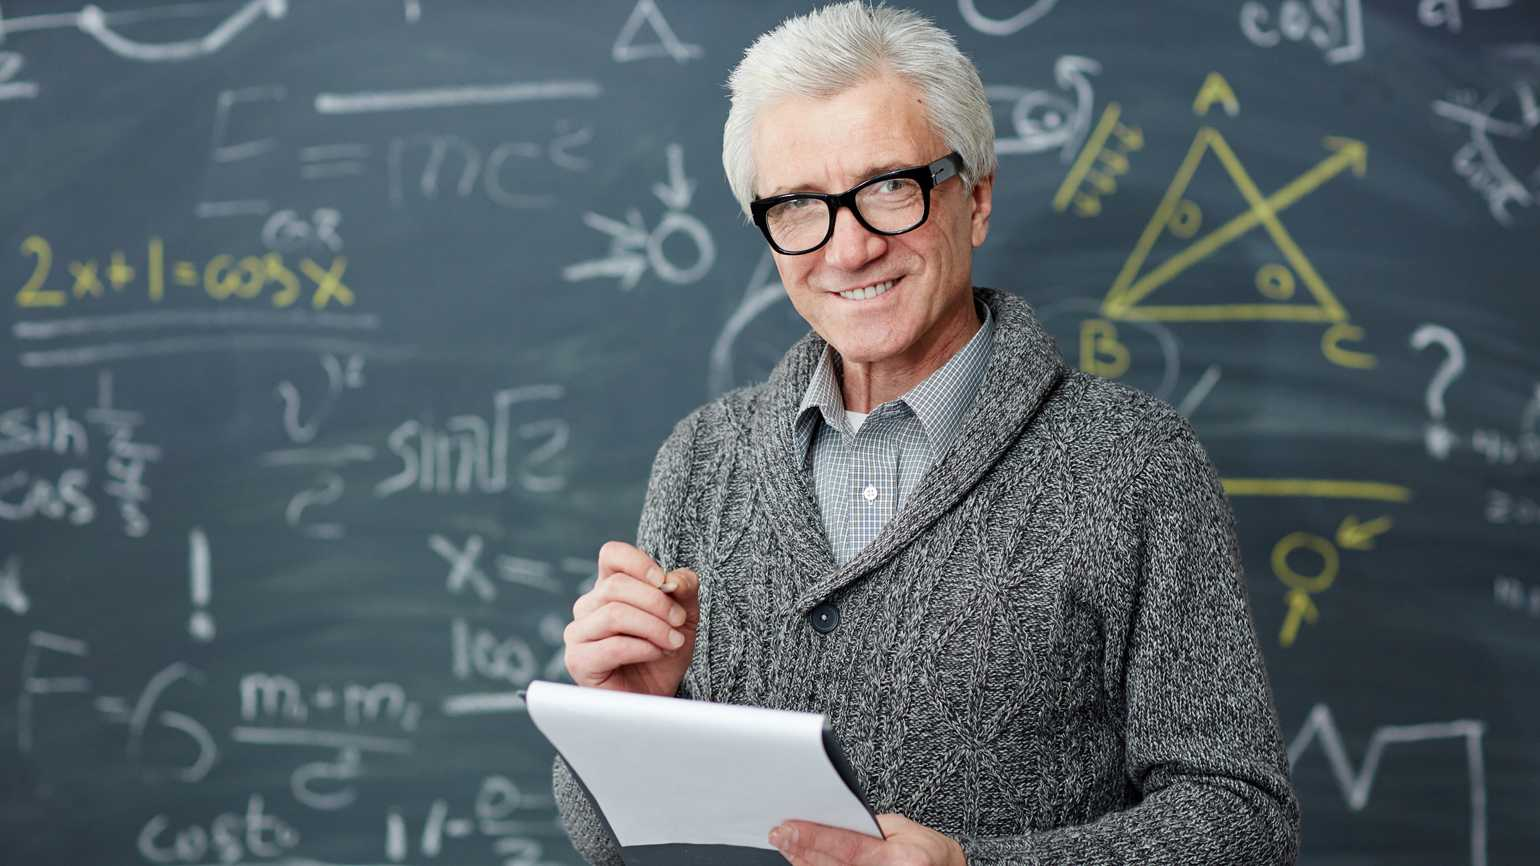 An older professor standing in front of a blackboard with math equations.